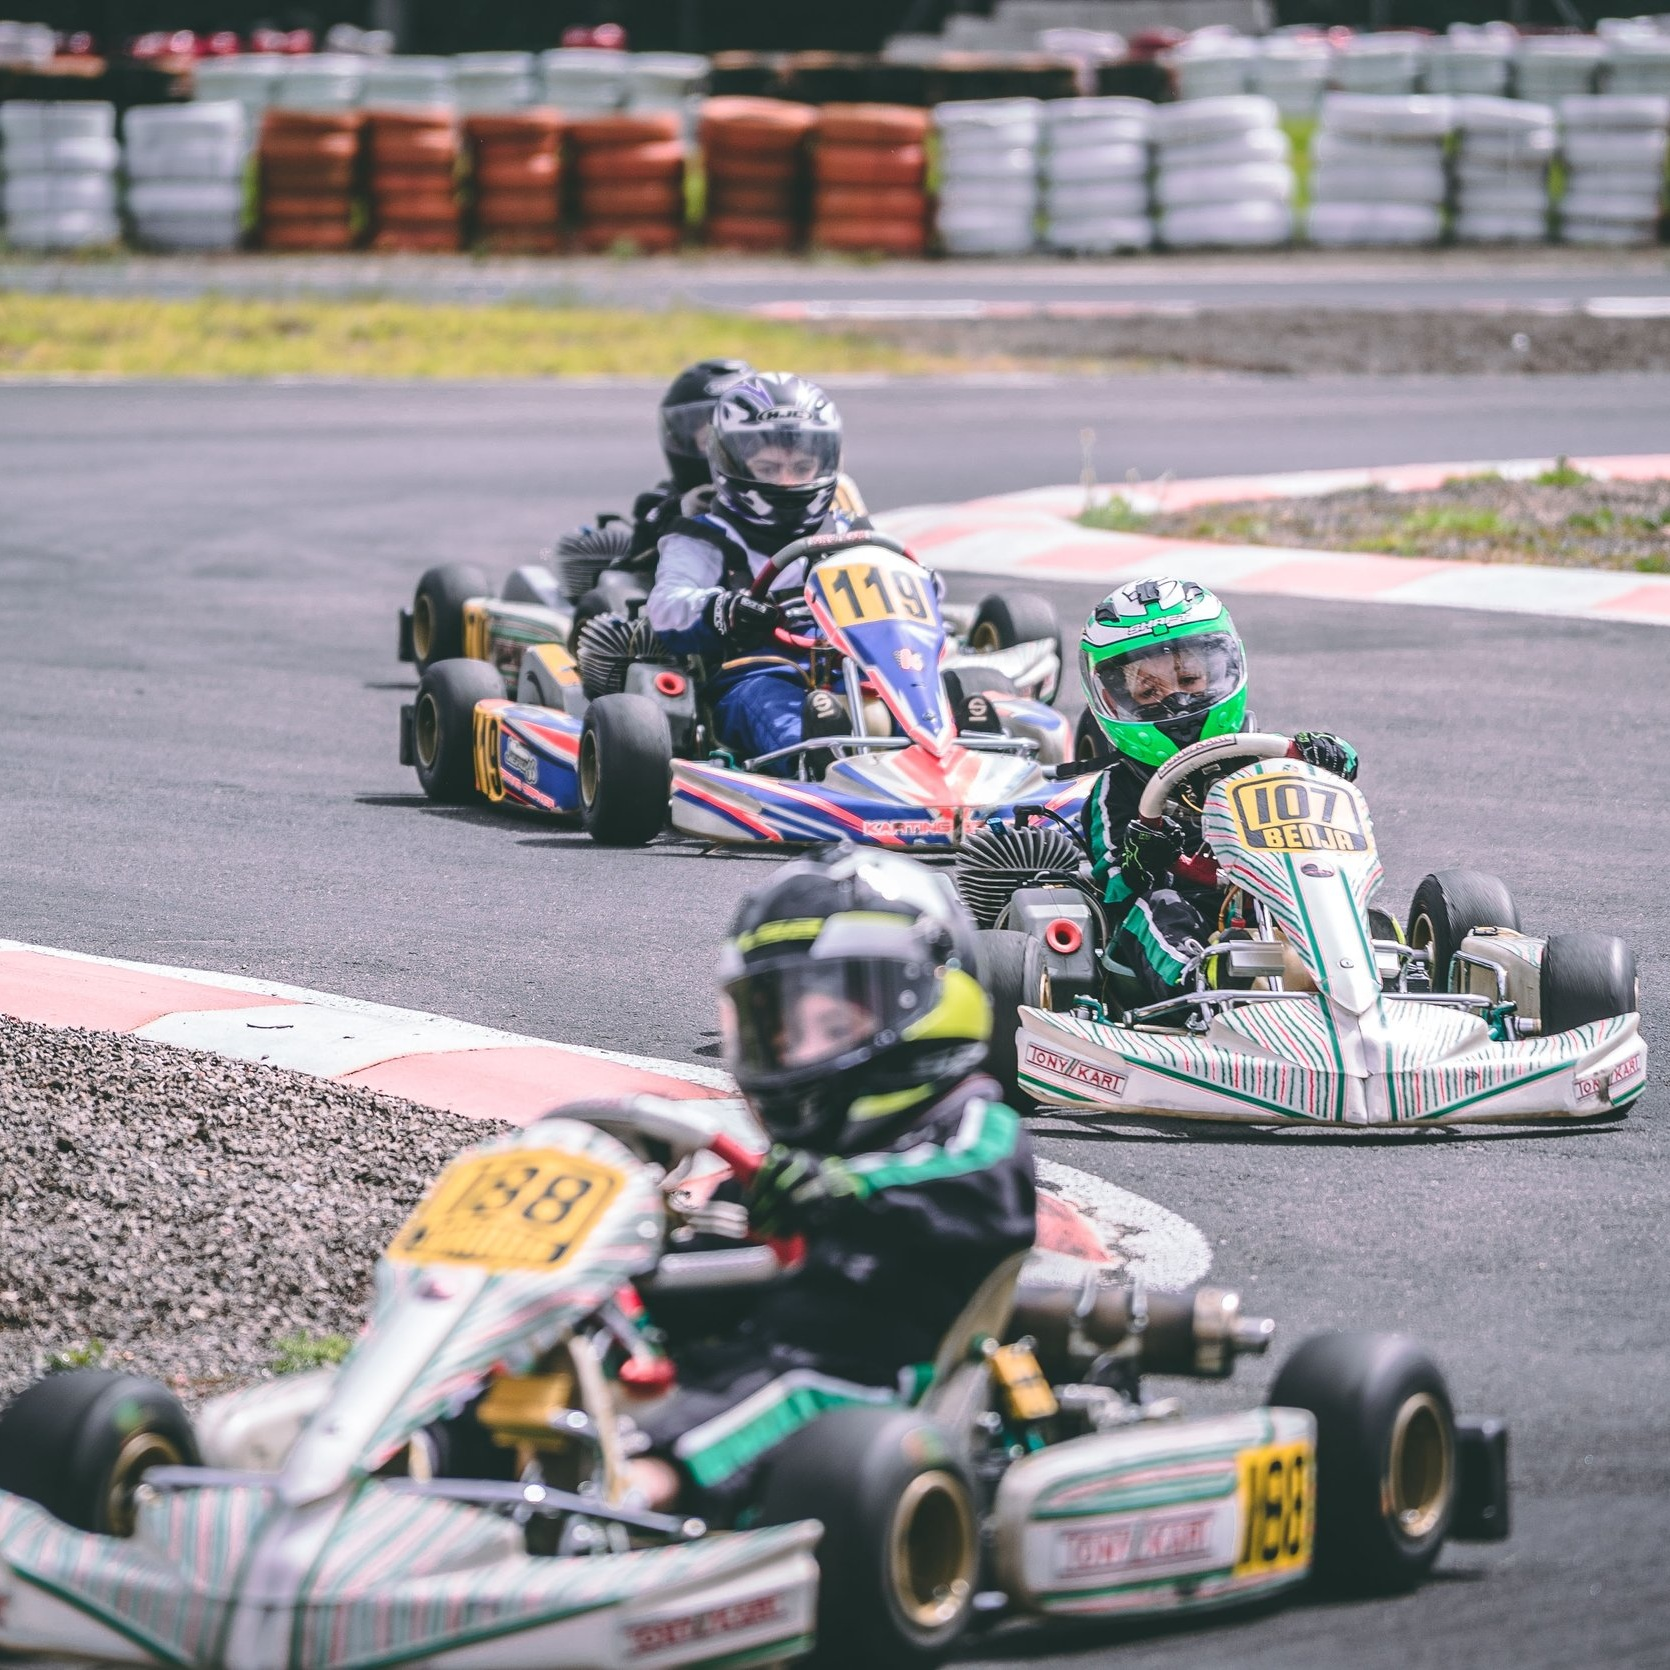 Karting - Find out how to get into karting and where to take part in this sport in your area.We have some fun videos and a step by step guide to getting started.